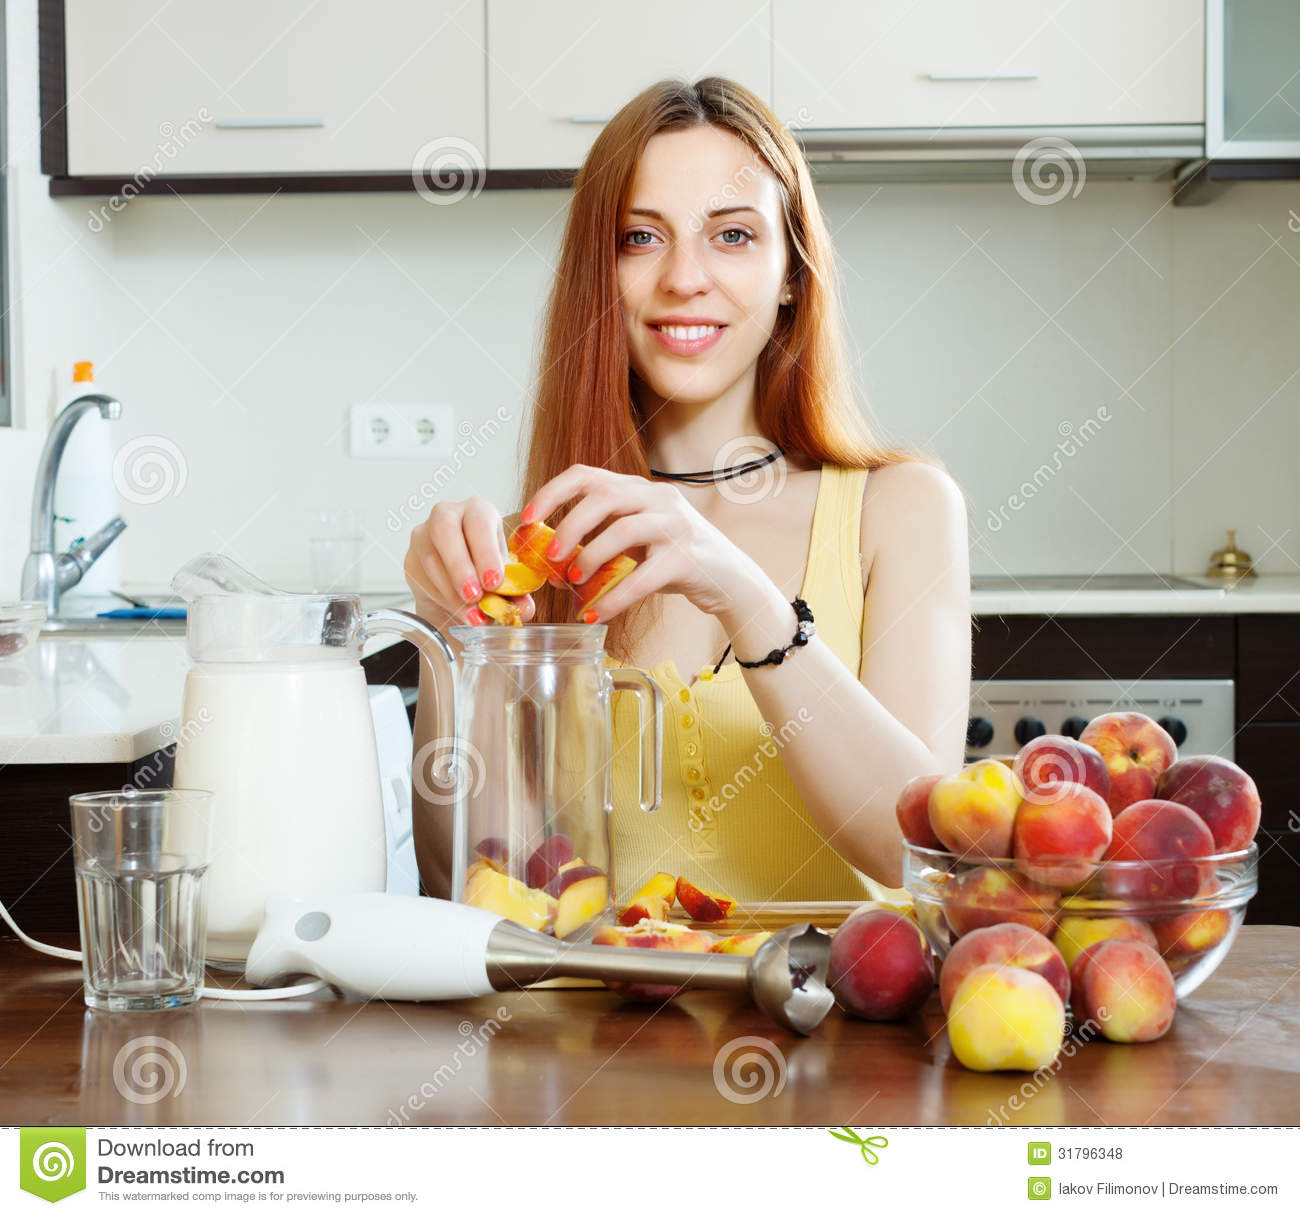 Women Kitchen: Woman Cooking Beverages With Blender From Peaches Stock